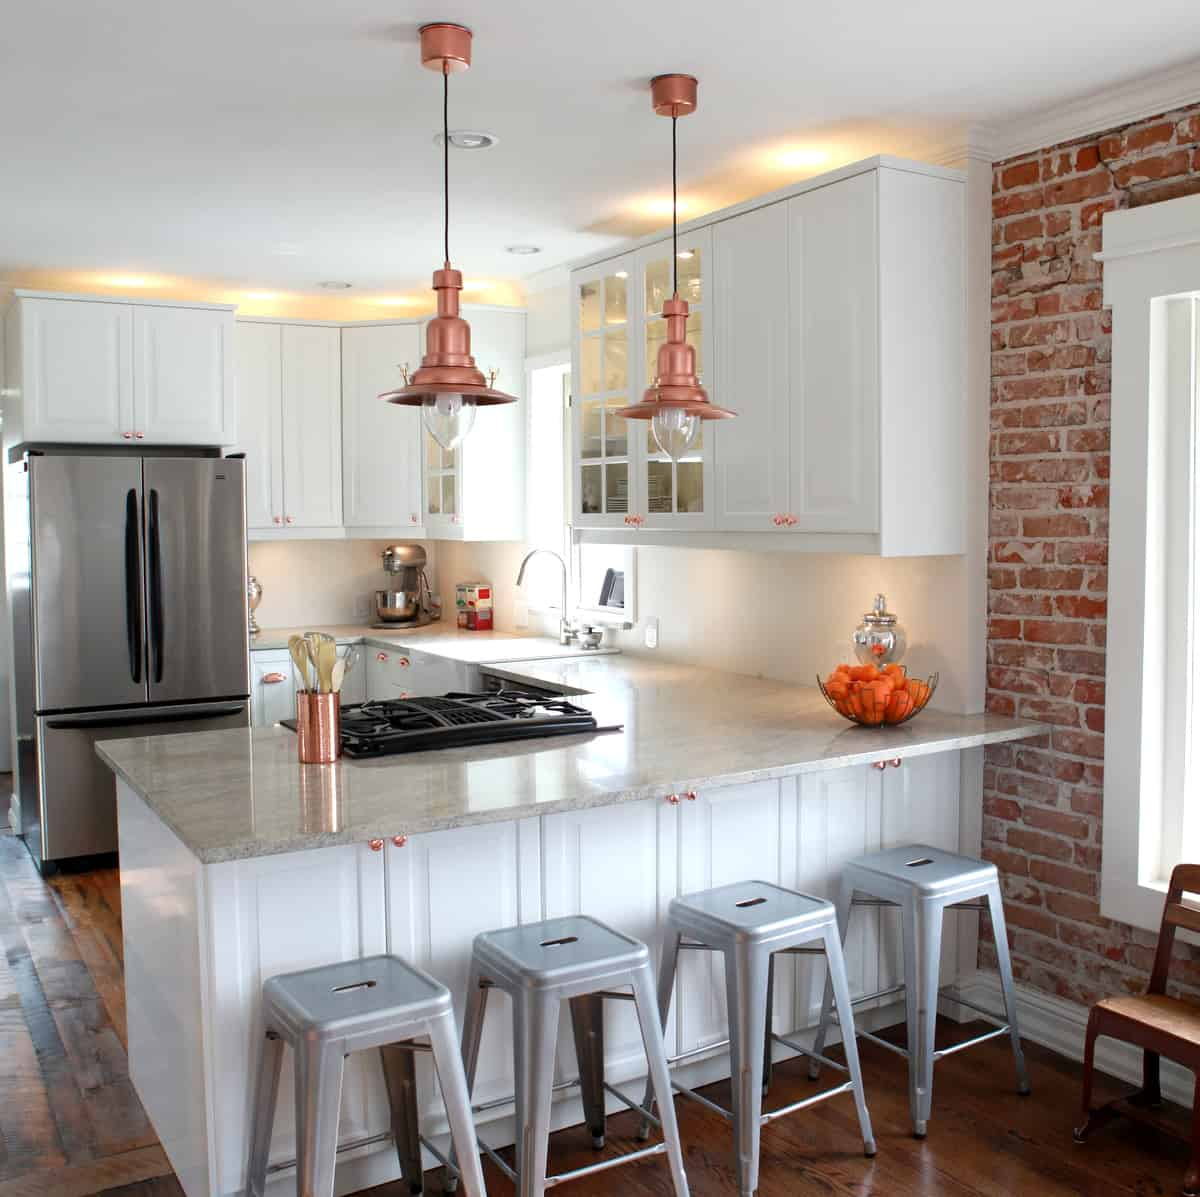 Although this kitchen is all white your focus goes directly towards the copper pendants.